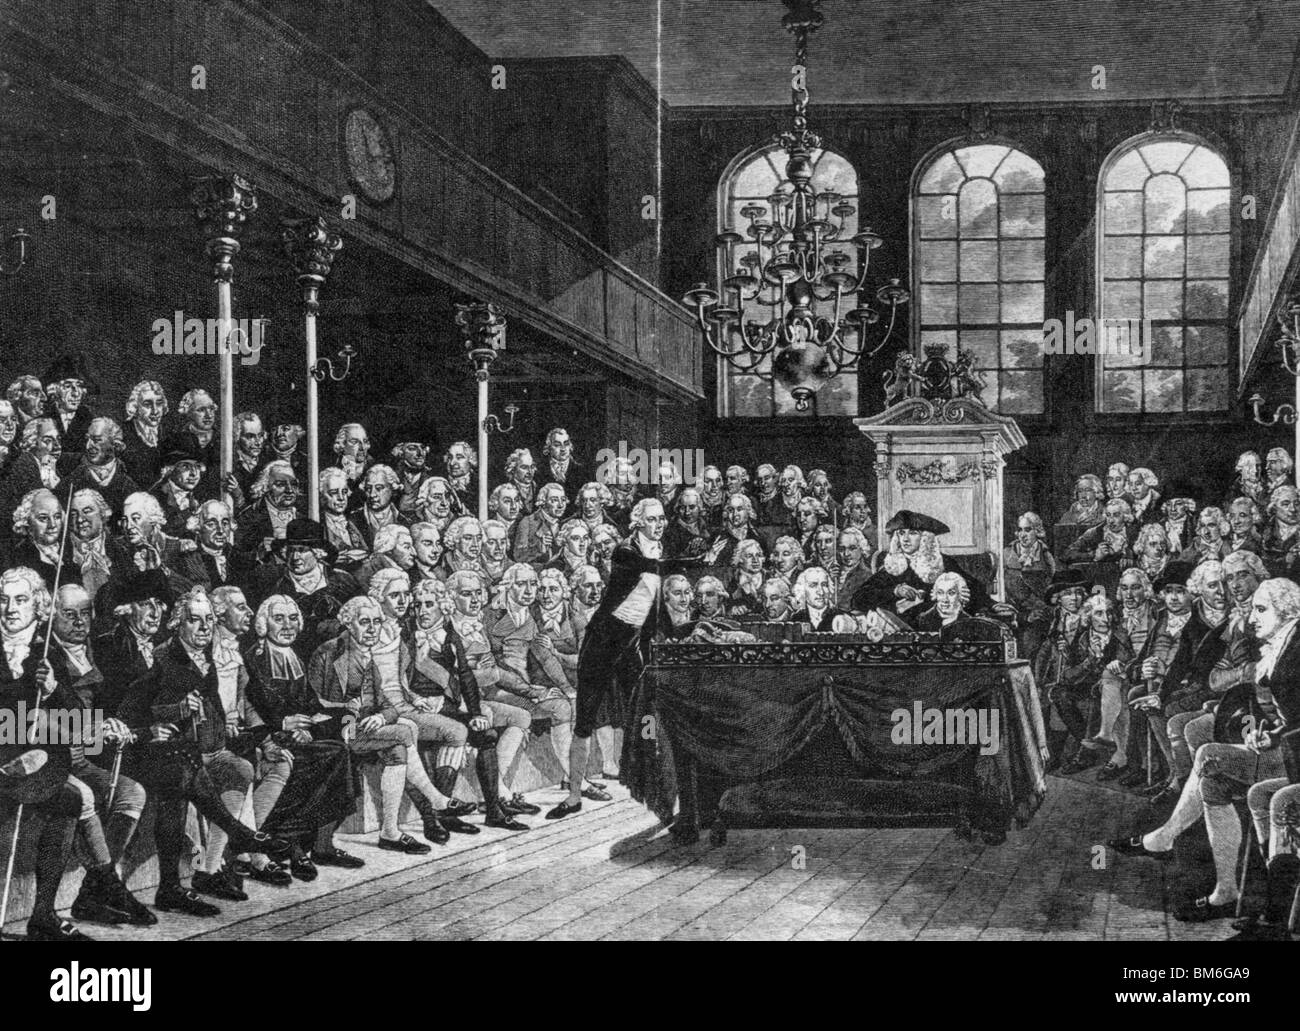 WILLIAM PITT addresses the House of Commons on the French declaration of war in 1793 - Stock Image